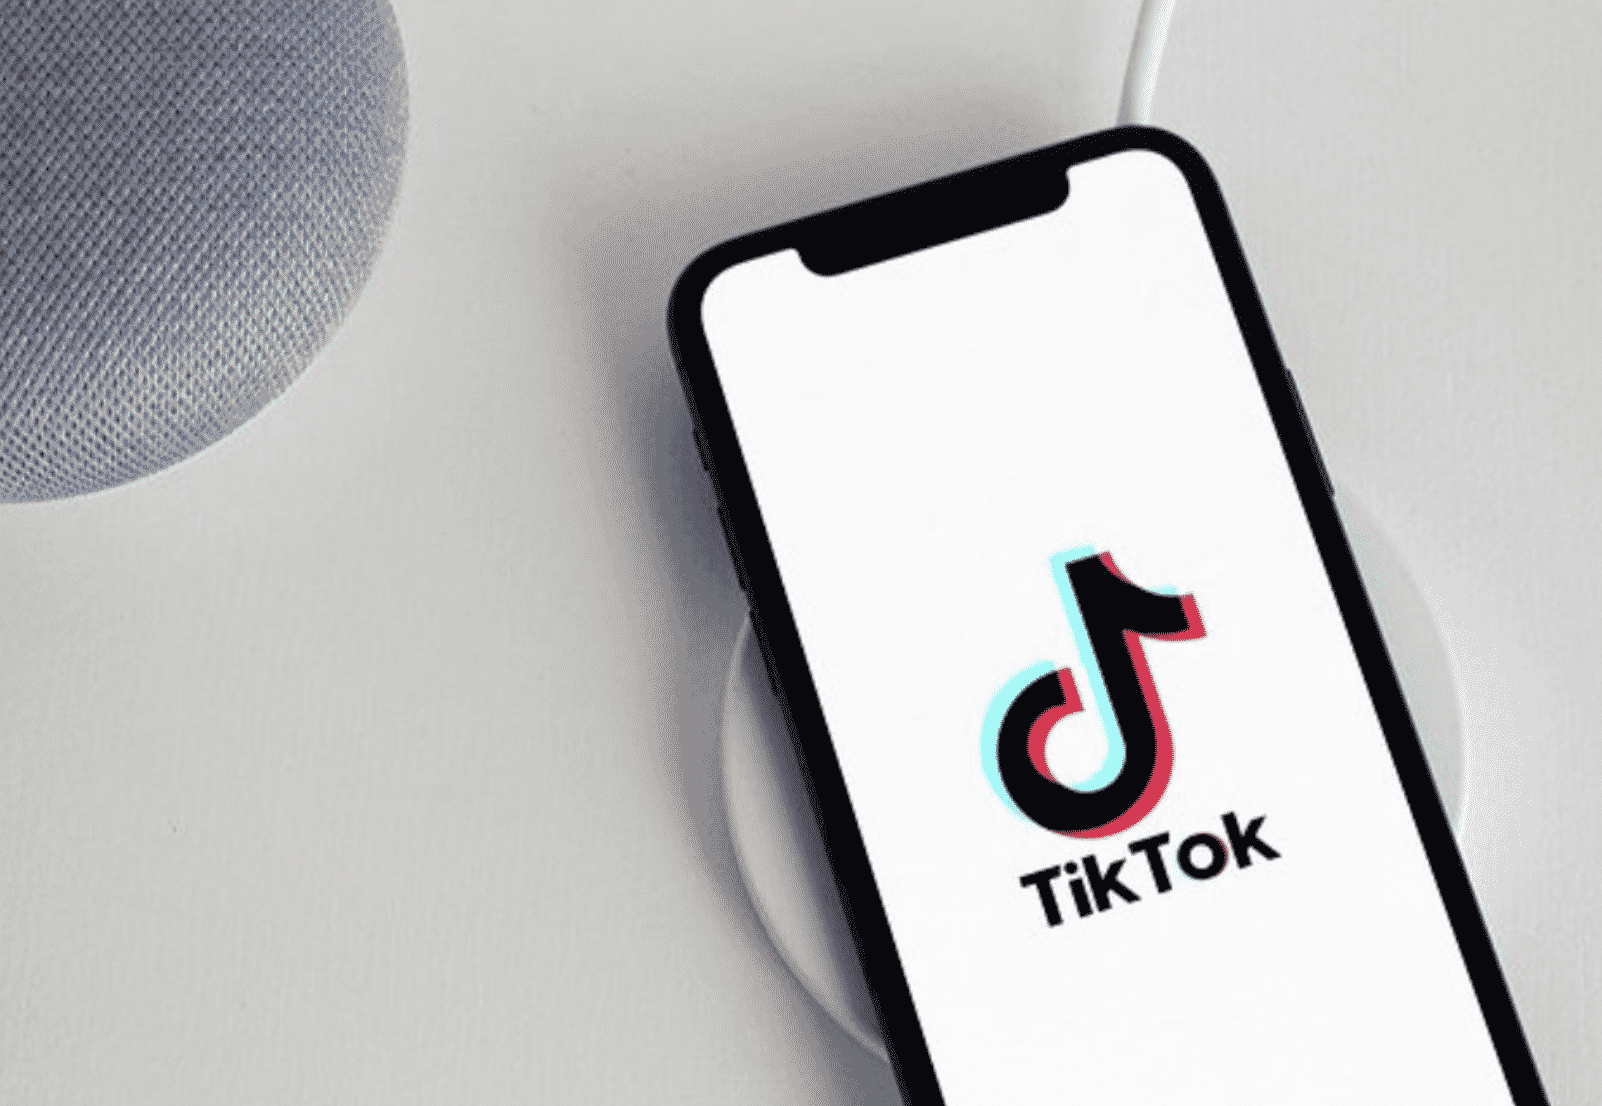 Is buying TikTok likes and followers the right way?